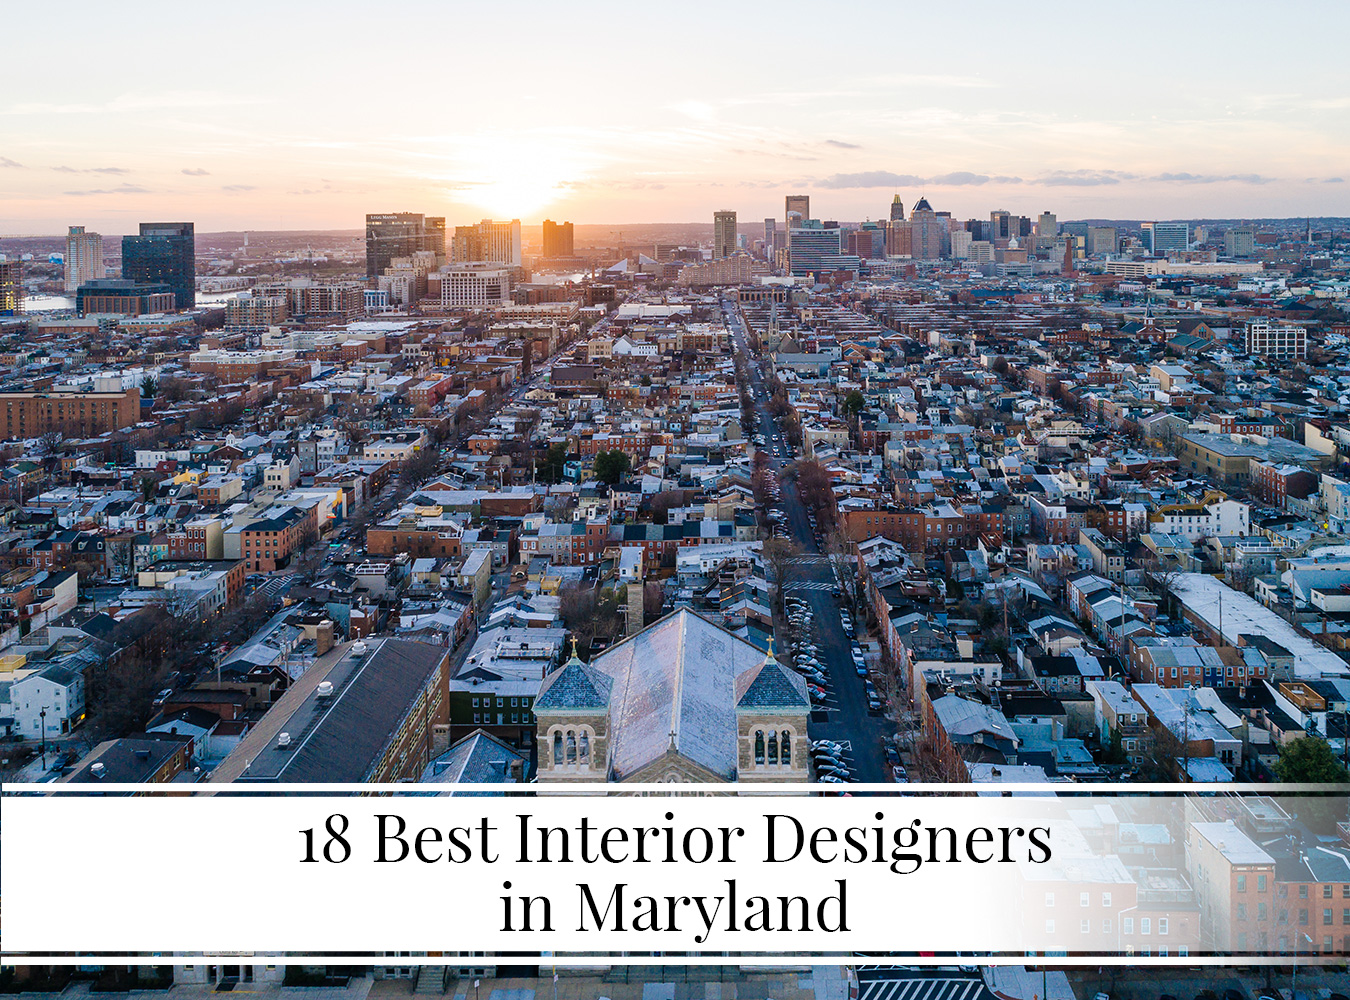 18 Best Interior Designers in Maryland - The LuxPad